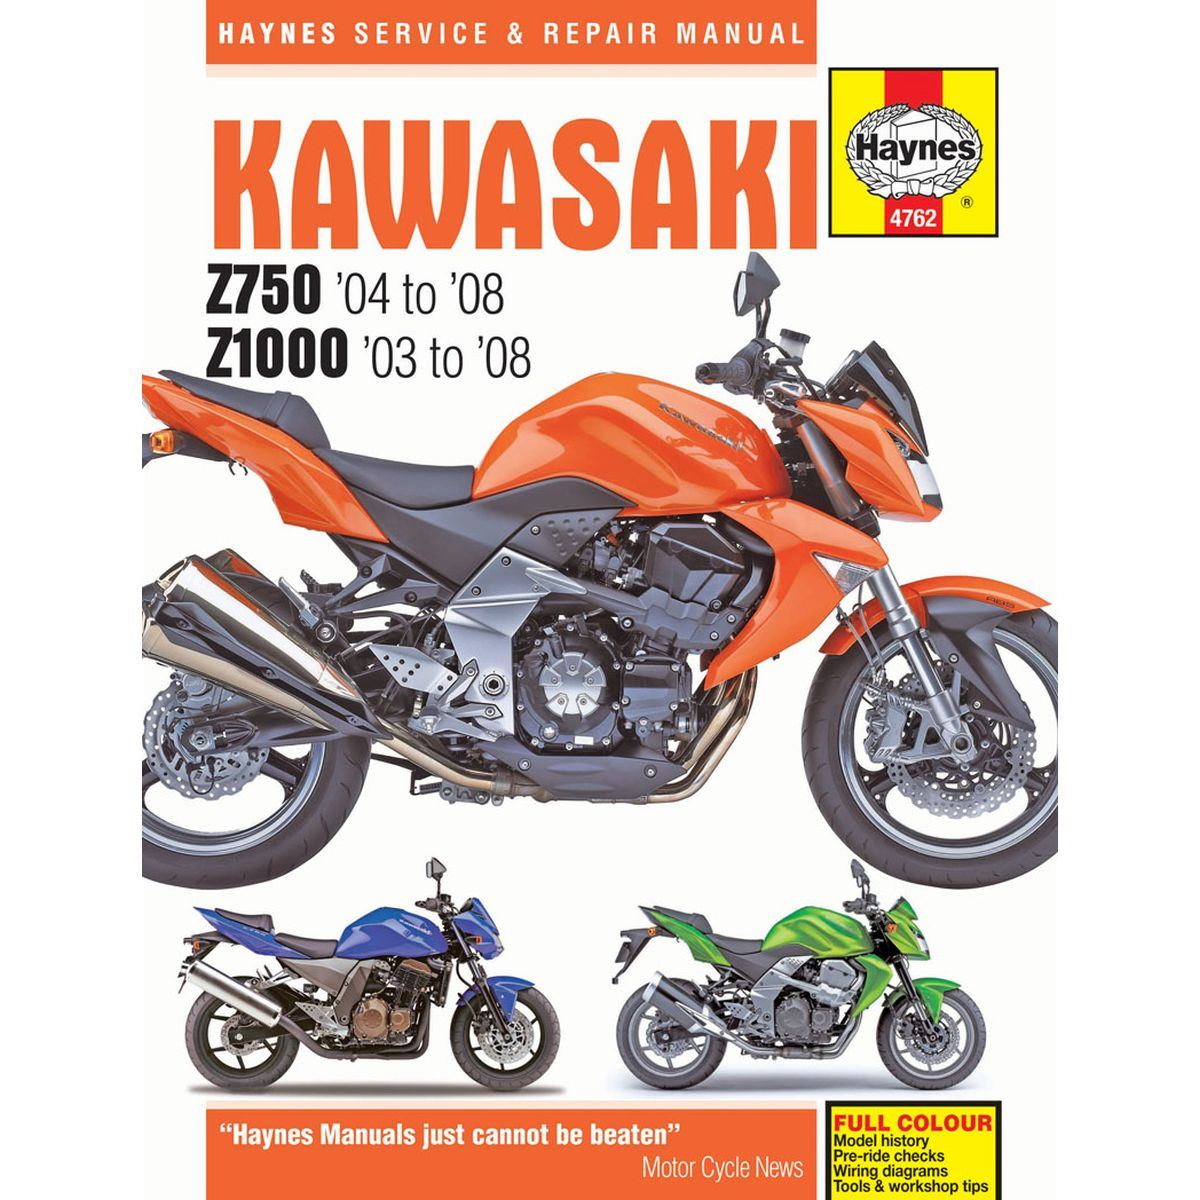 Manual Haynes For 2008 Kawasaki Z 750 Zr750l8f Ebay 1978 Wiring Diagram Image Is Loading